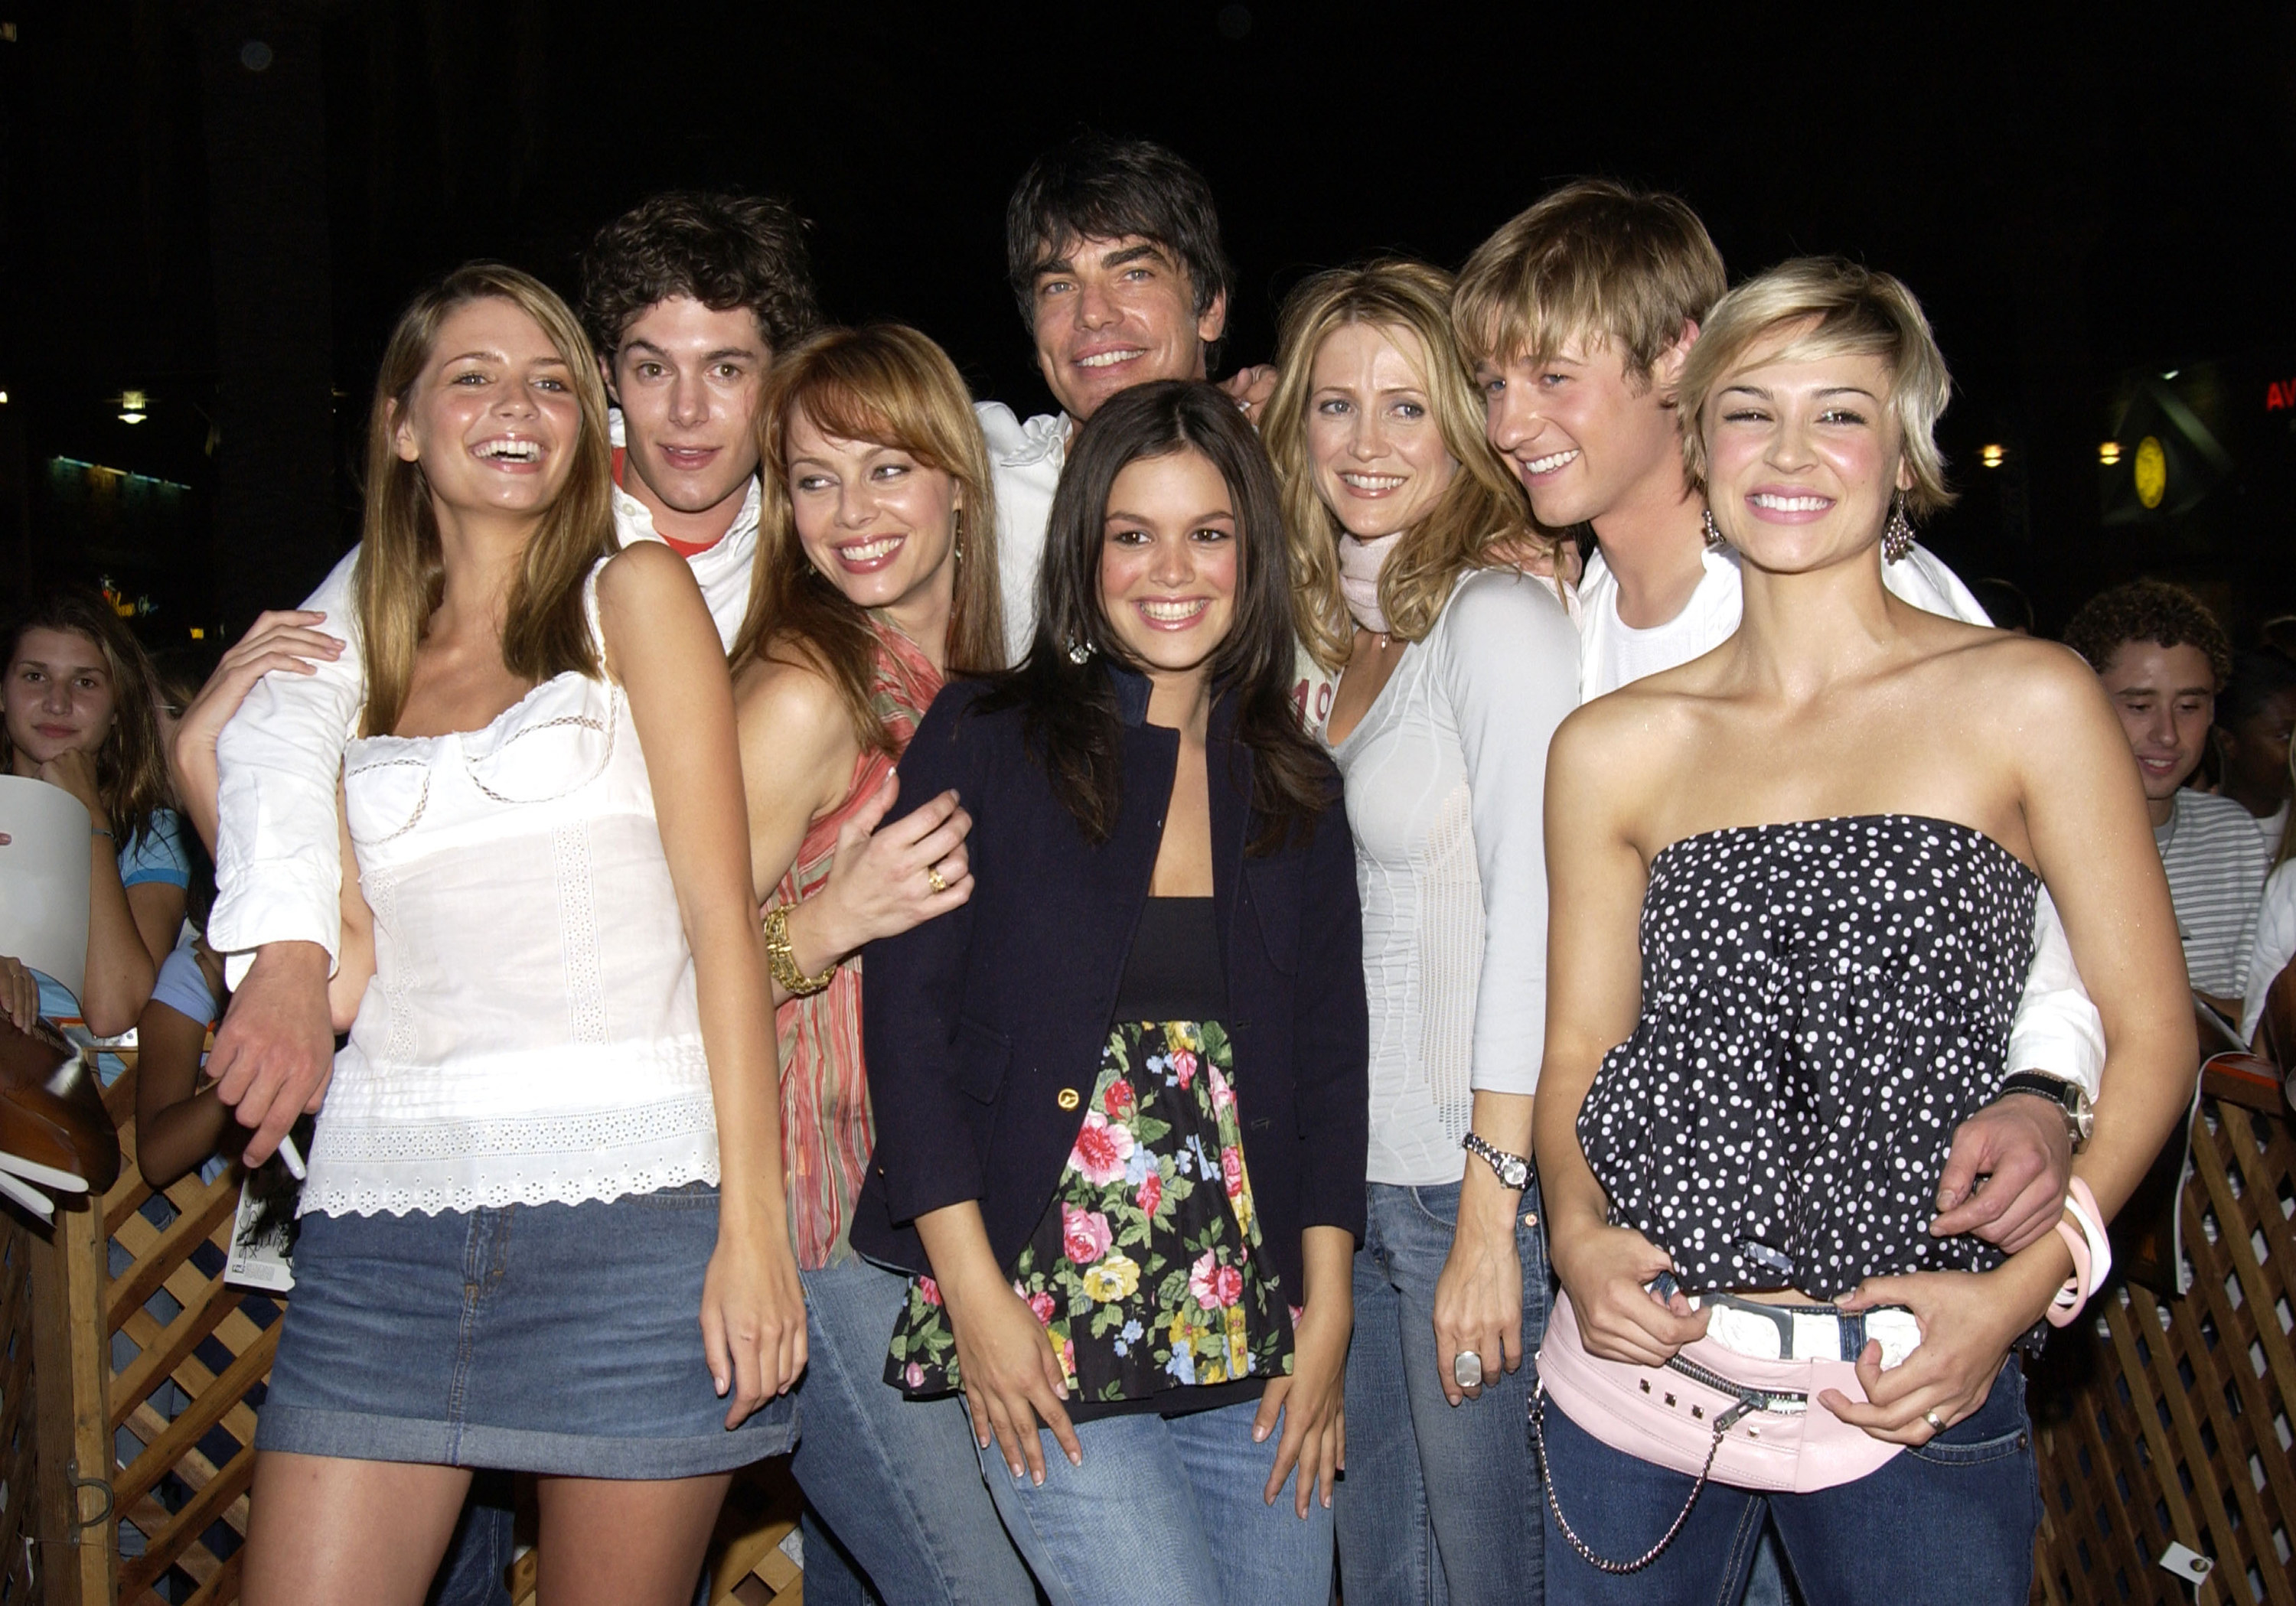 The entire O.C. cast poses for a group photo